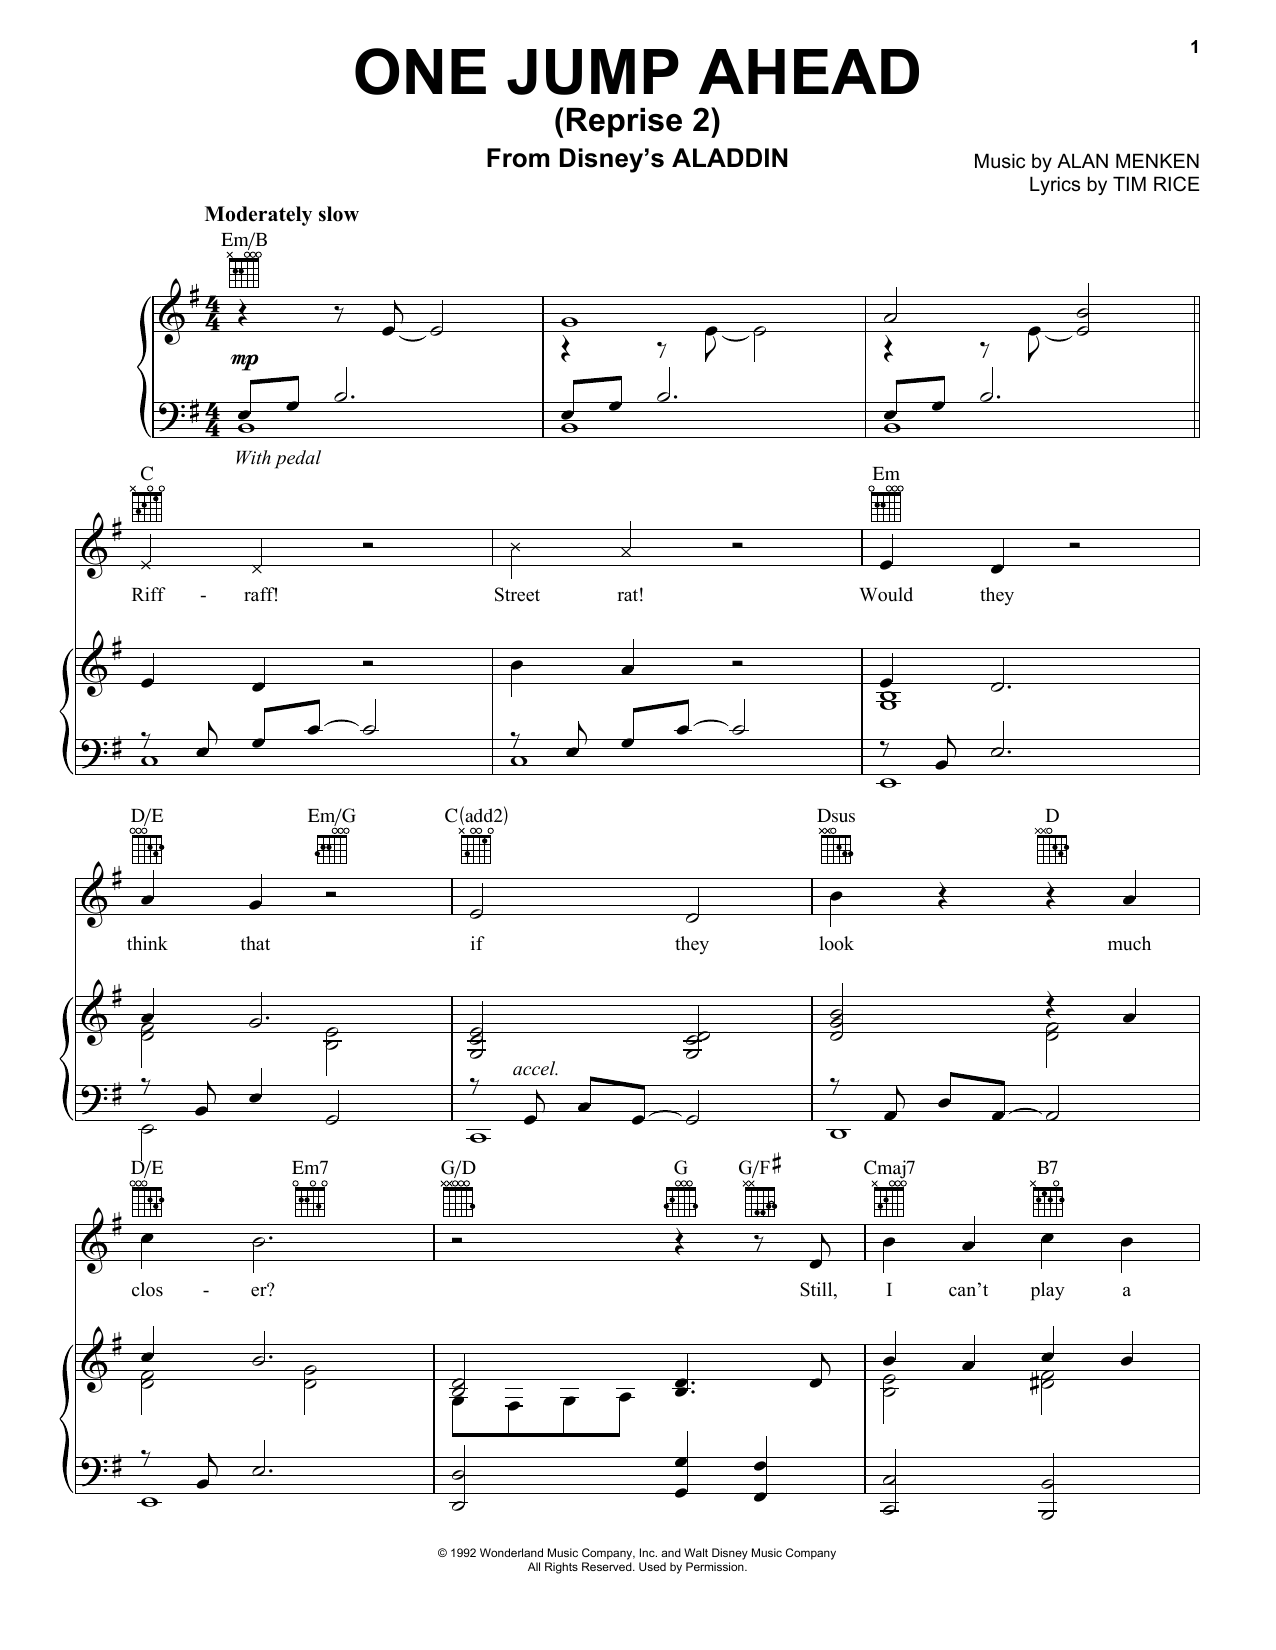 Mena Massoud One Jump Ahead (Reprise 2) (from Disney's Aladdin) sheet music notes and chords. Download Printable PDF.